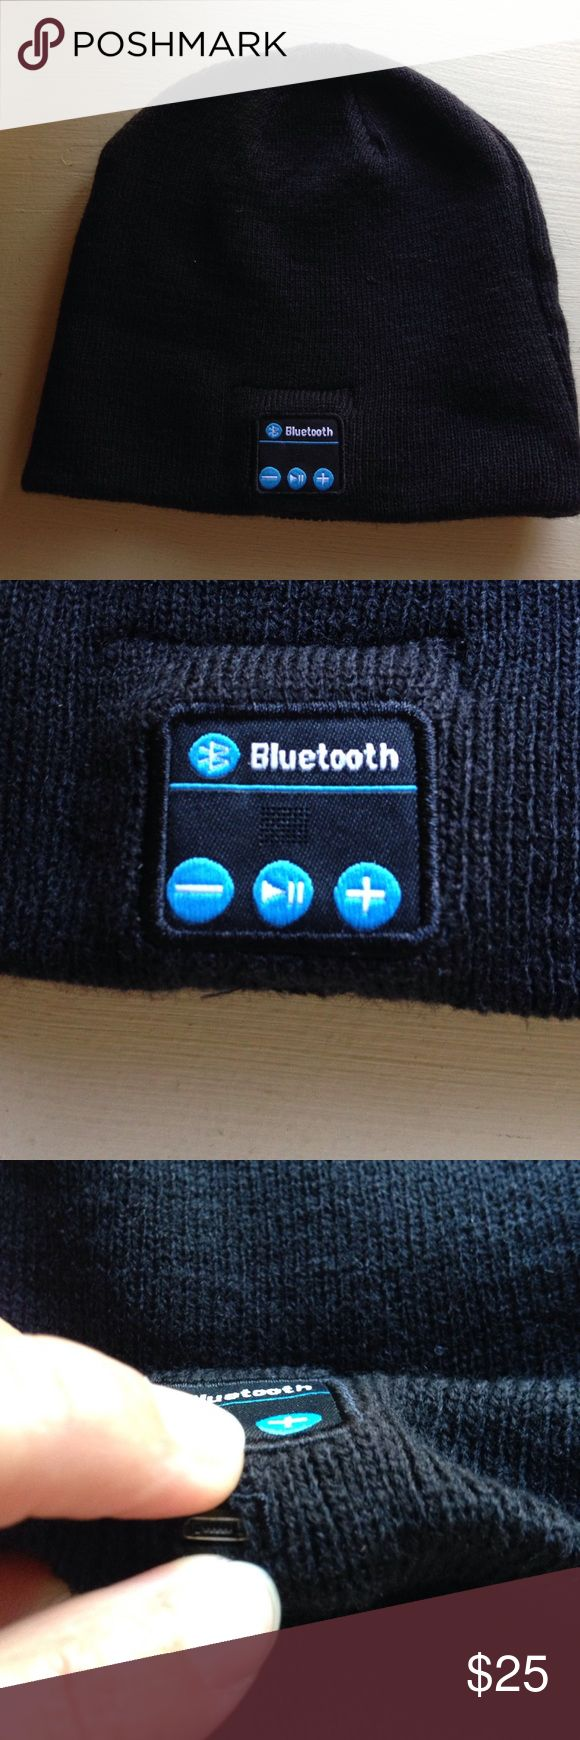 Bluetooth Beanie Bluetooth capable beanie. Compatible with all phone types. Stay warm and jam!!! 😎 like new only connected my phone to check out the sound. Accessories Hats